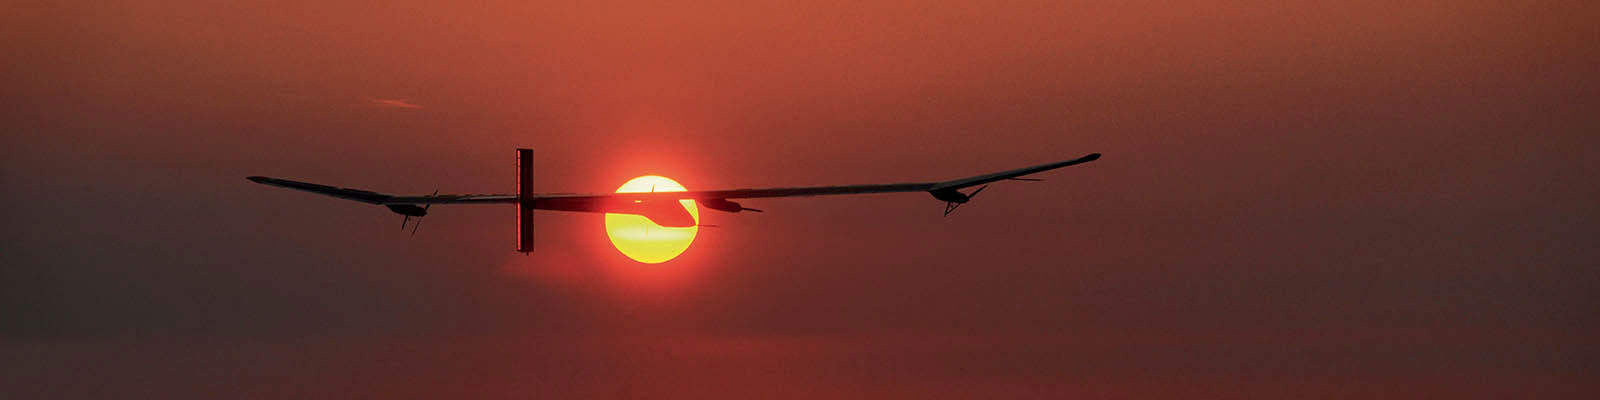 SOLAR IMPULSE HB-SIA - Antecedentes